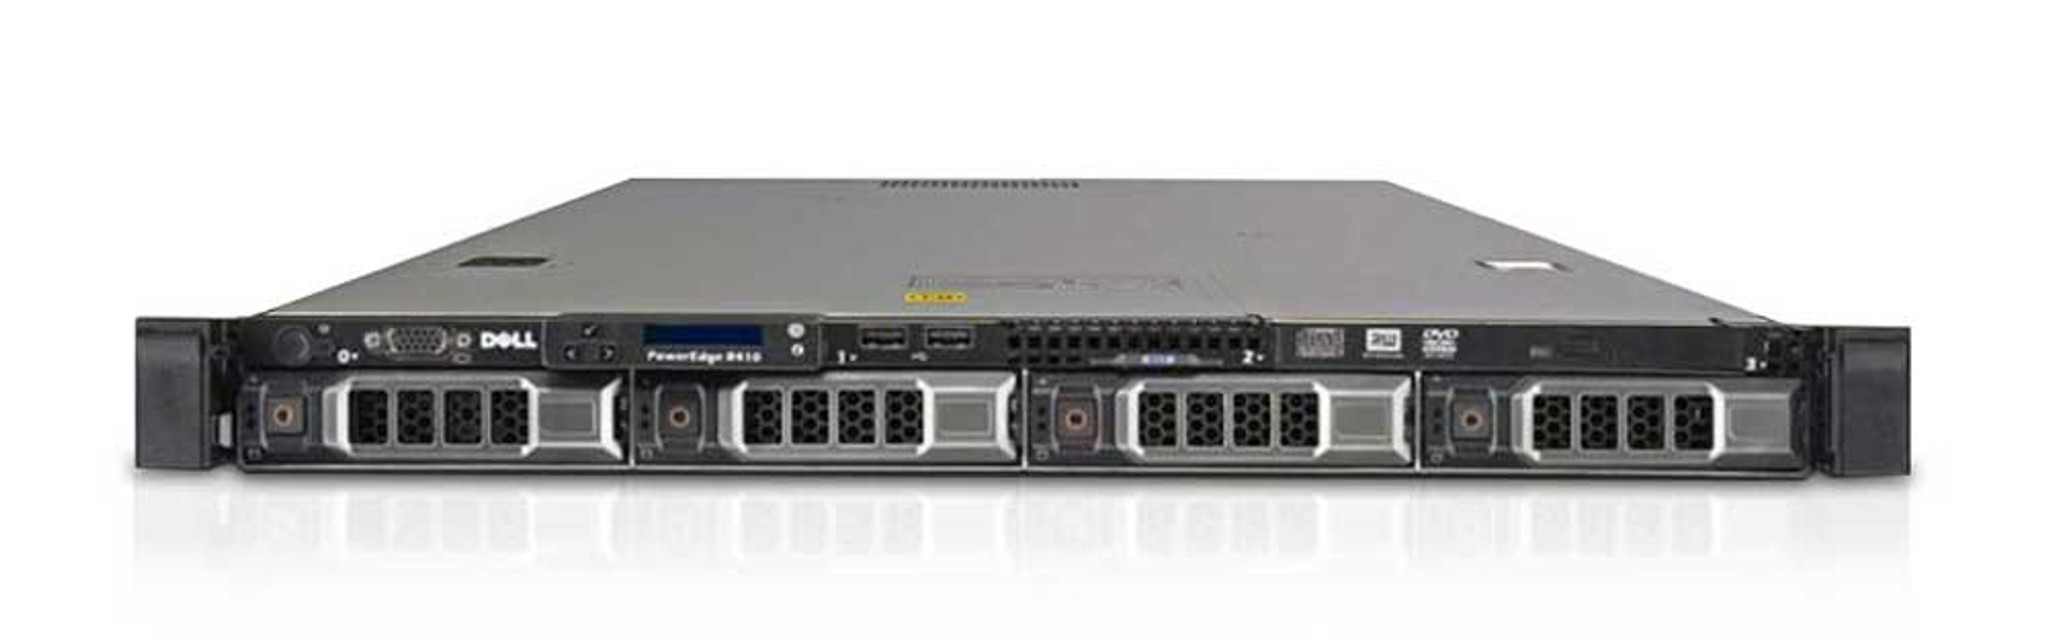 Dell PowerEdge R410 Server - Customize Your Own